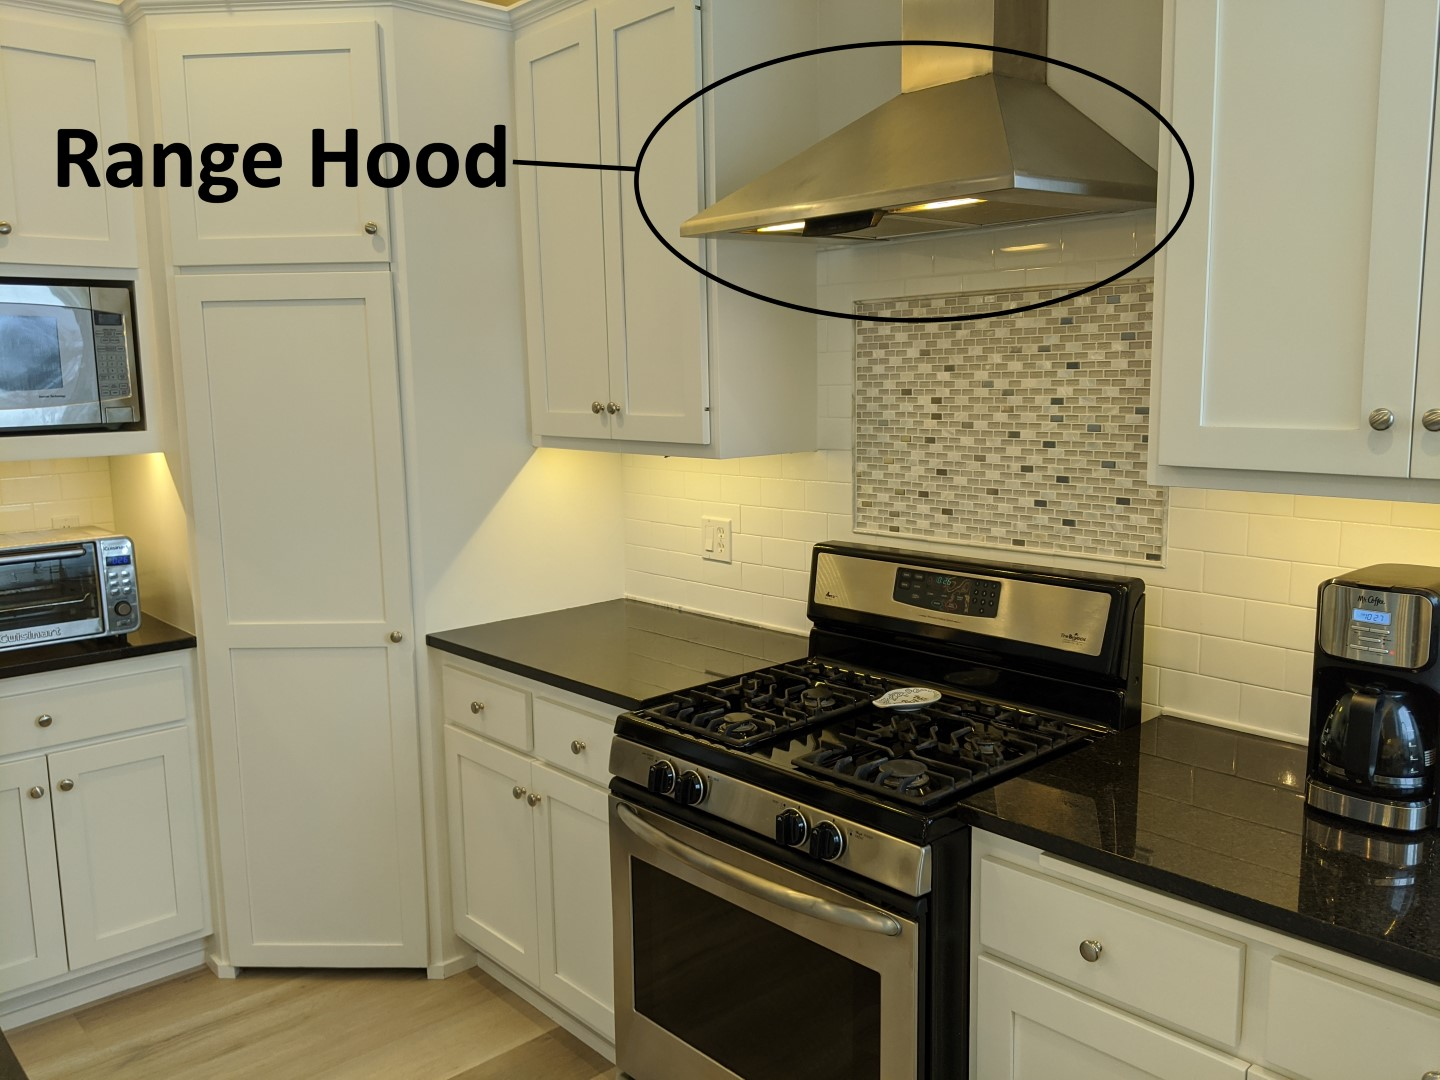 Kitchen Range Hoods Are For All